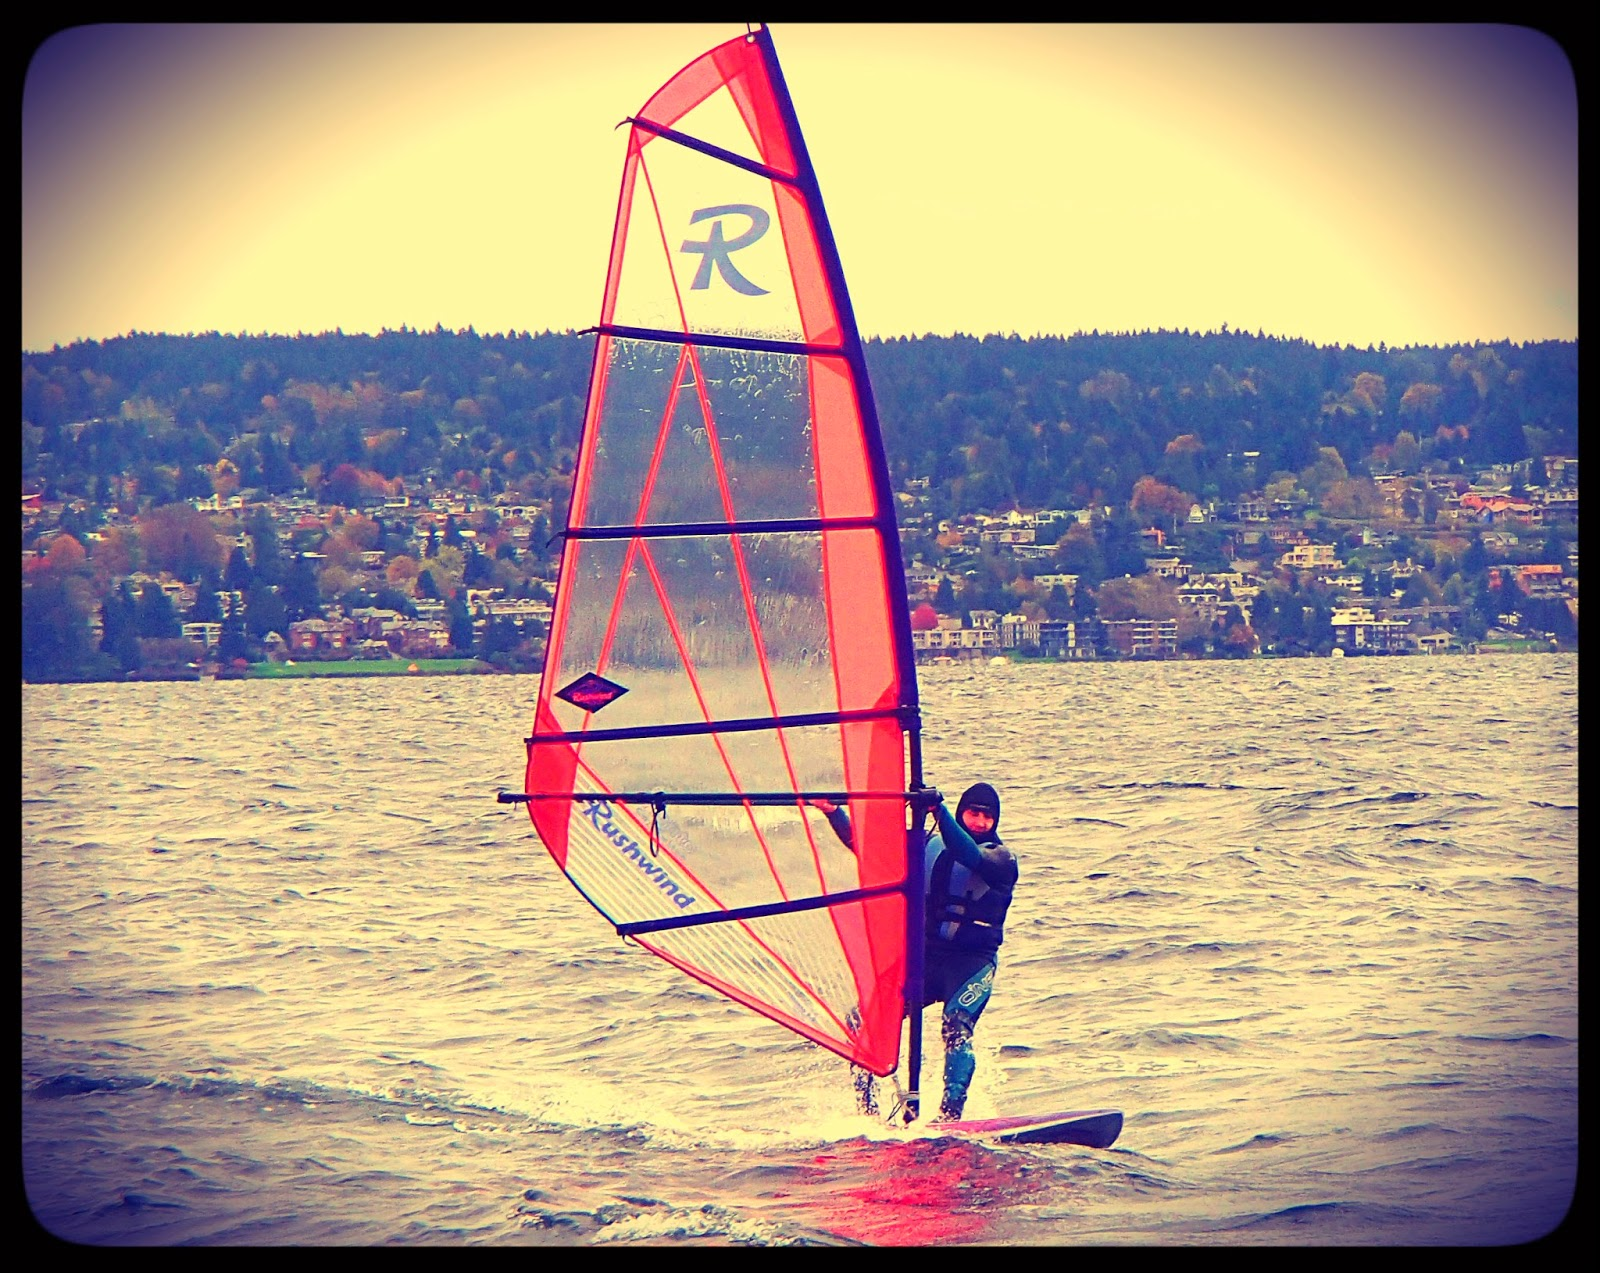 Windsurfing at Magnuson Park in Seattle